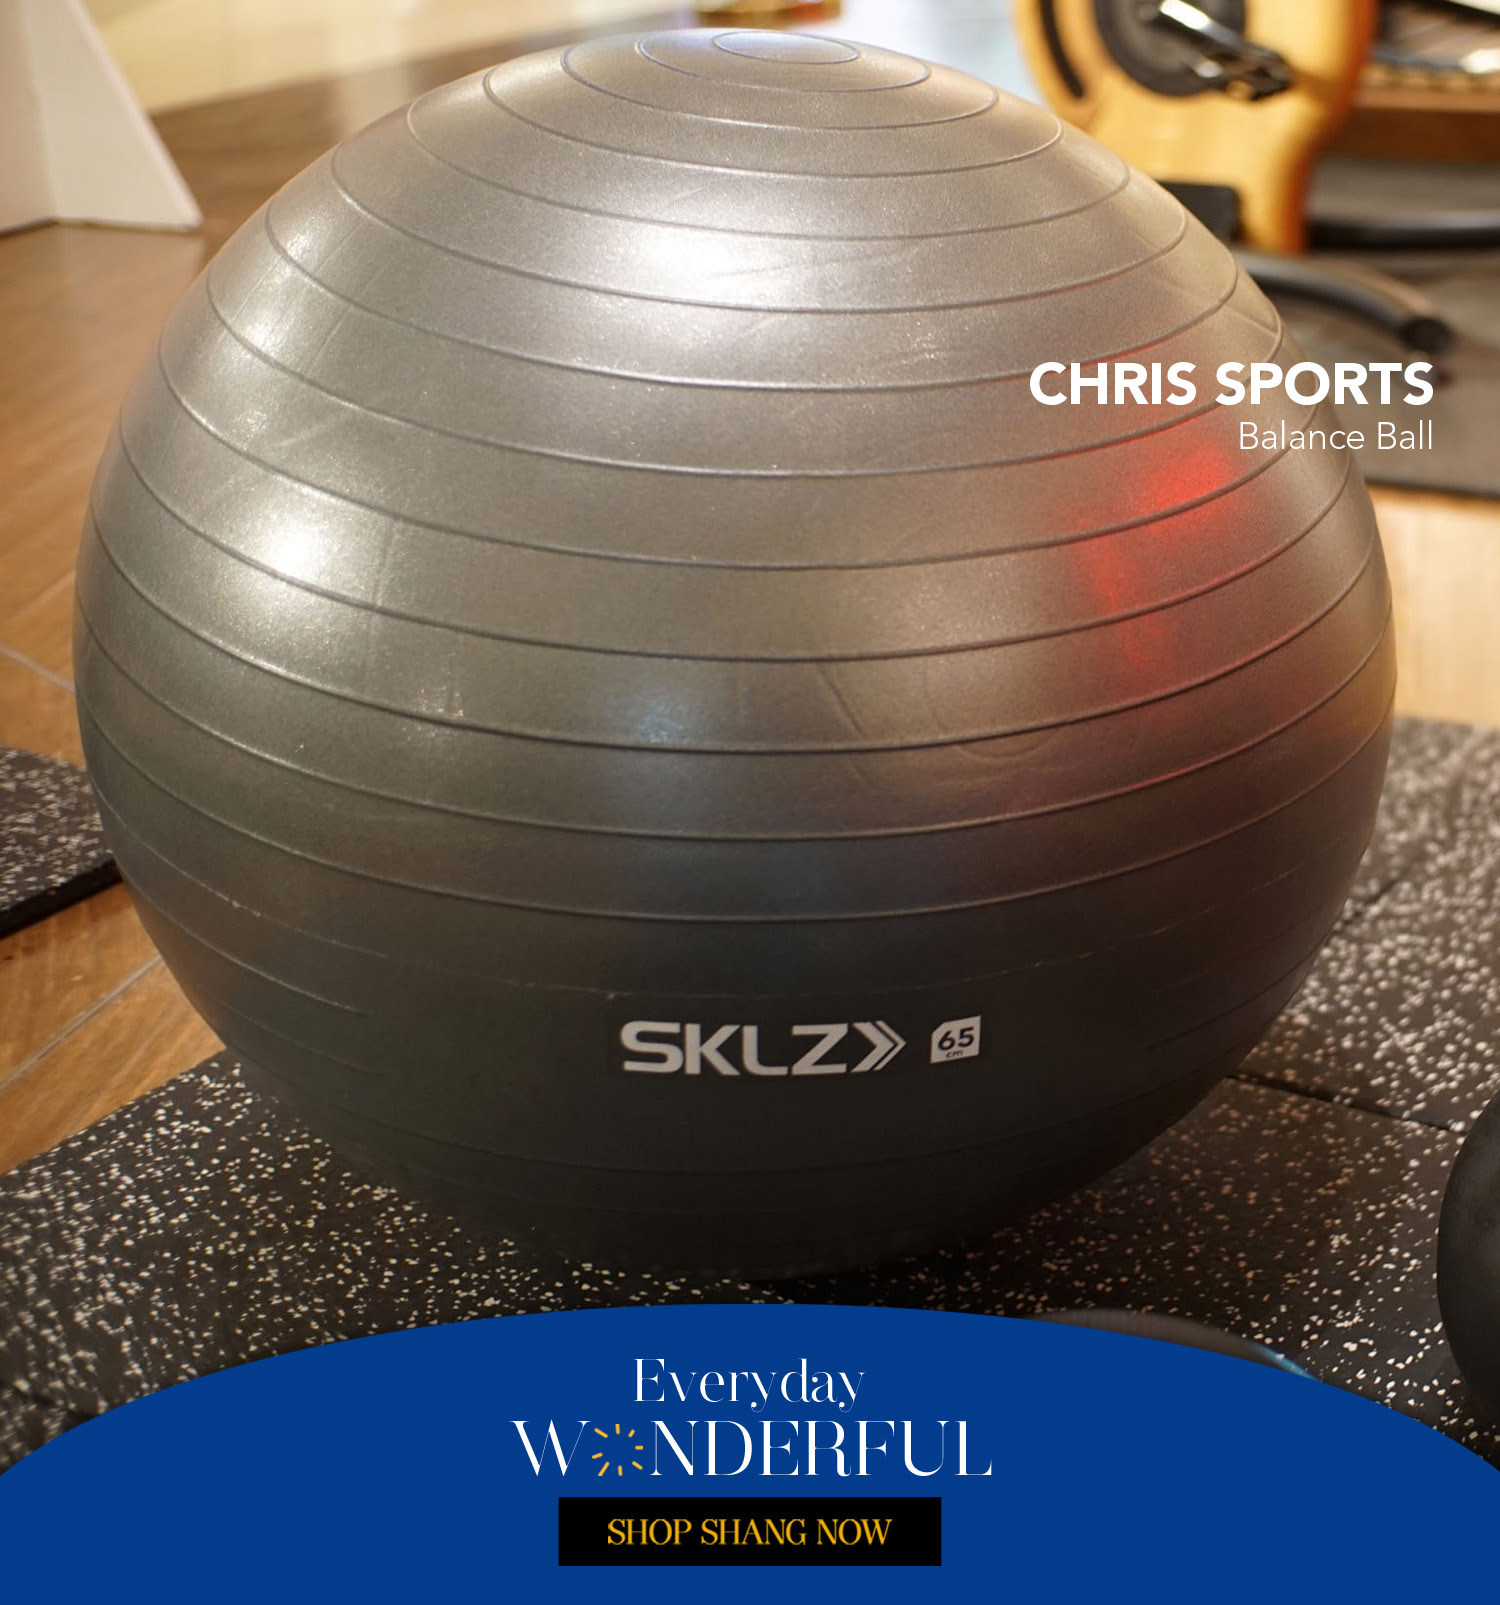 Balance Ball from Chris Sports